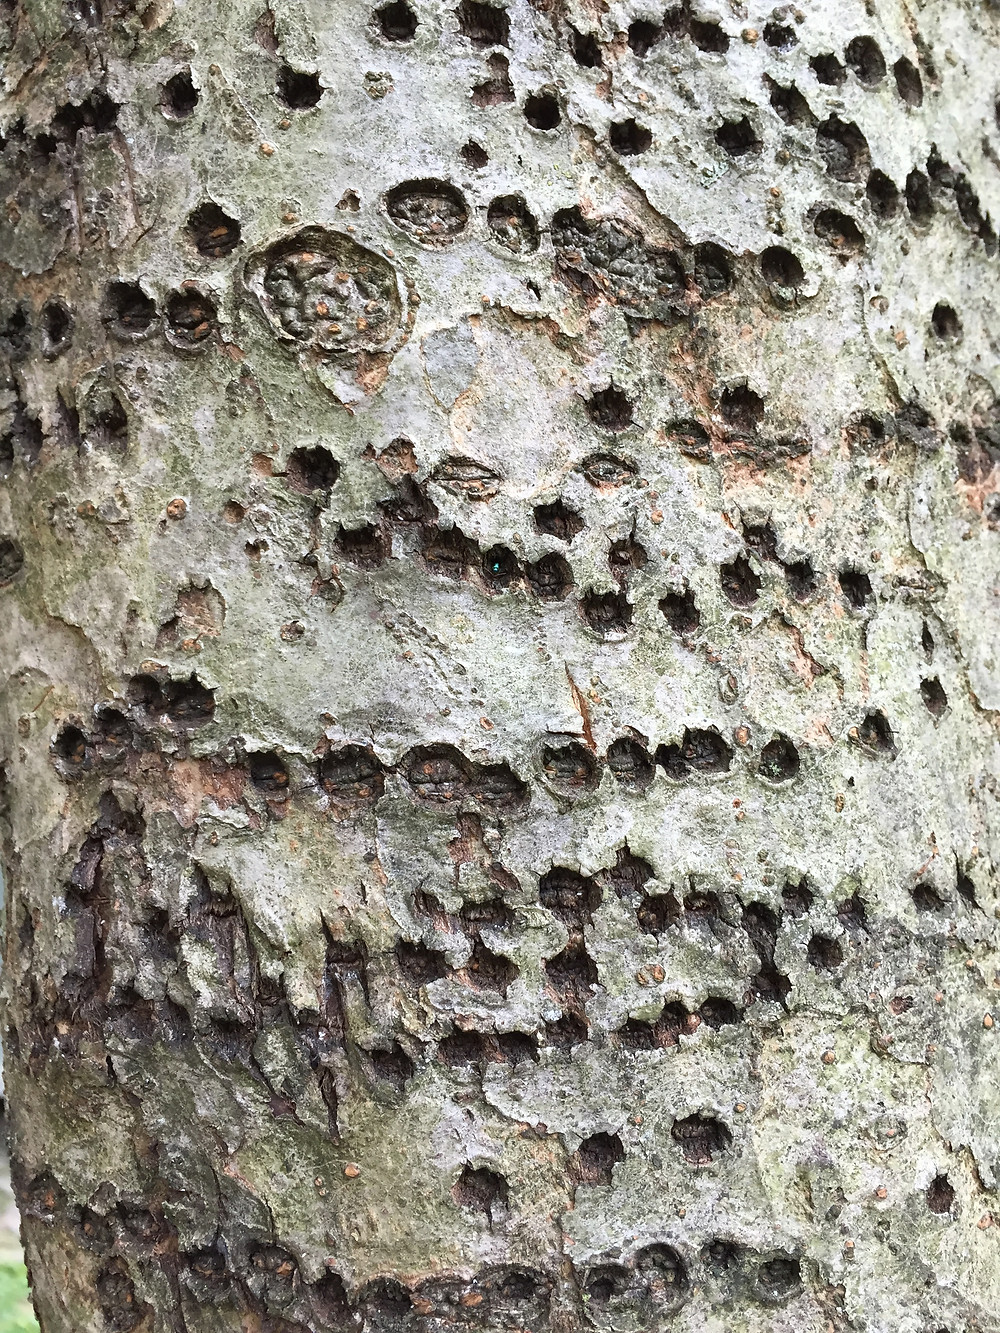 At first glance someone untrained in the ornithological sciences might consider this tree as virus-ridden, which it was - by woodpeckers!